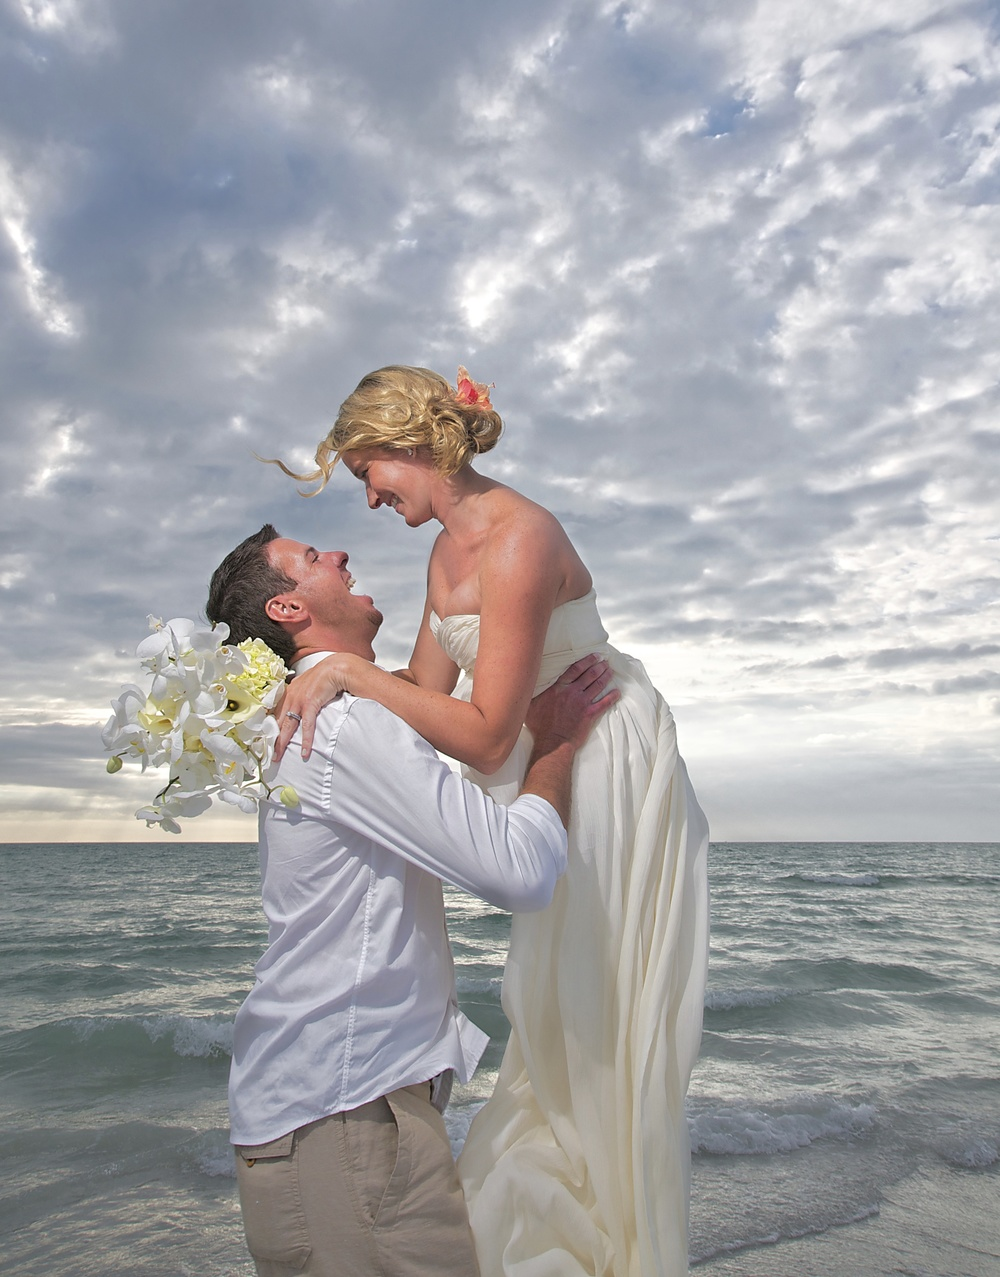 candid-beach-wedding-florida-lifting-bride.jpg